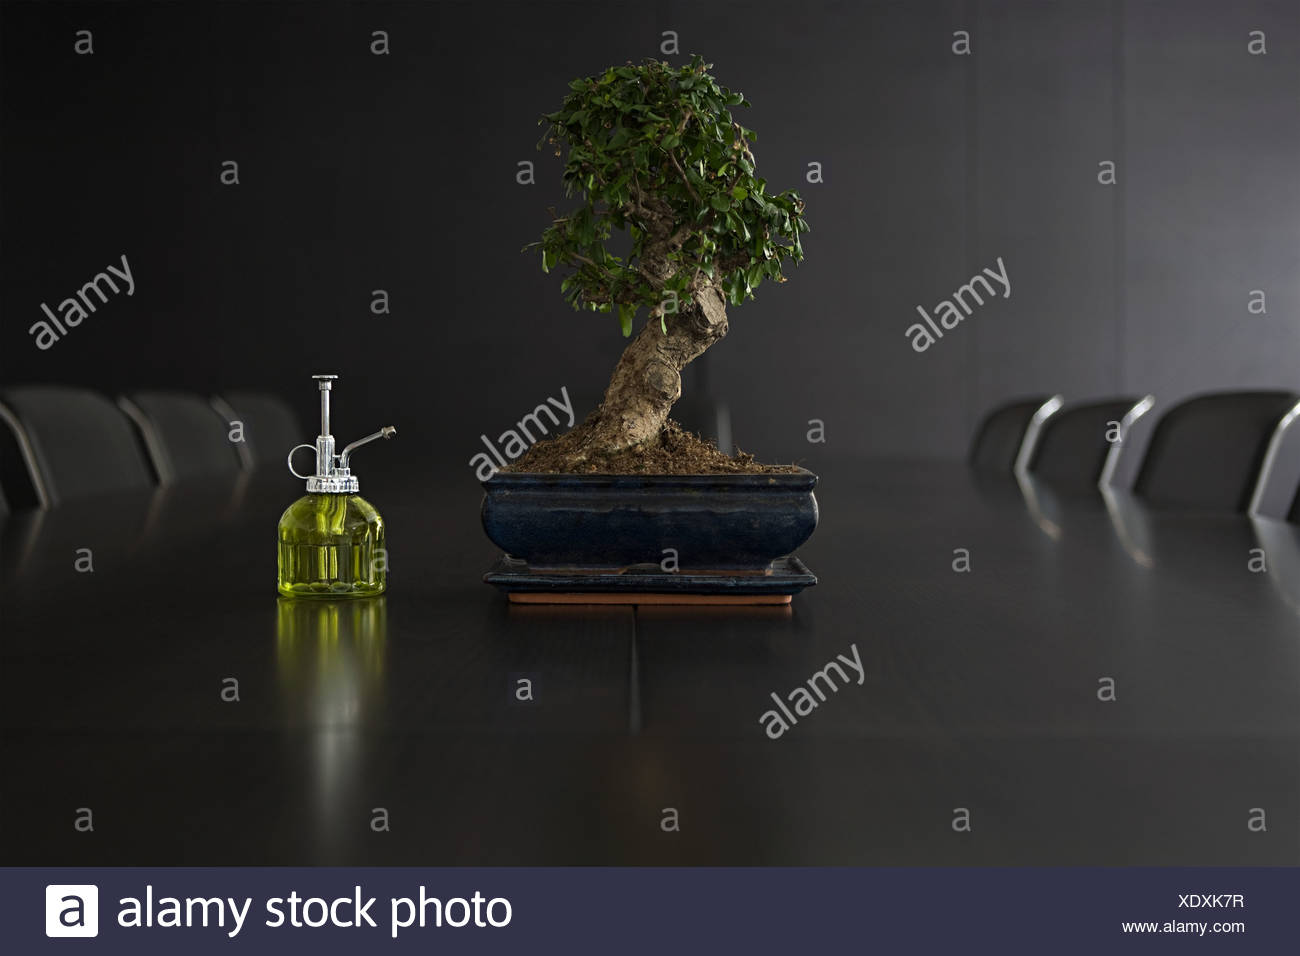 Bonsai tree on a conference table - Stock Image